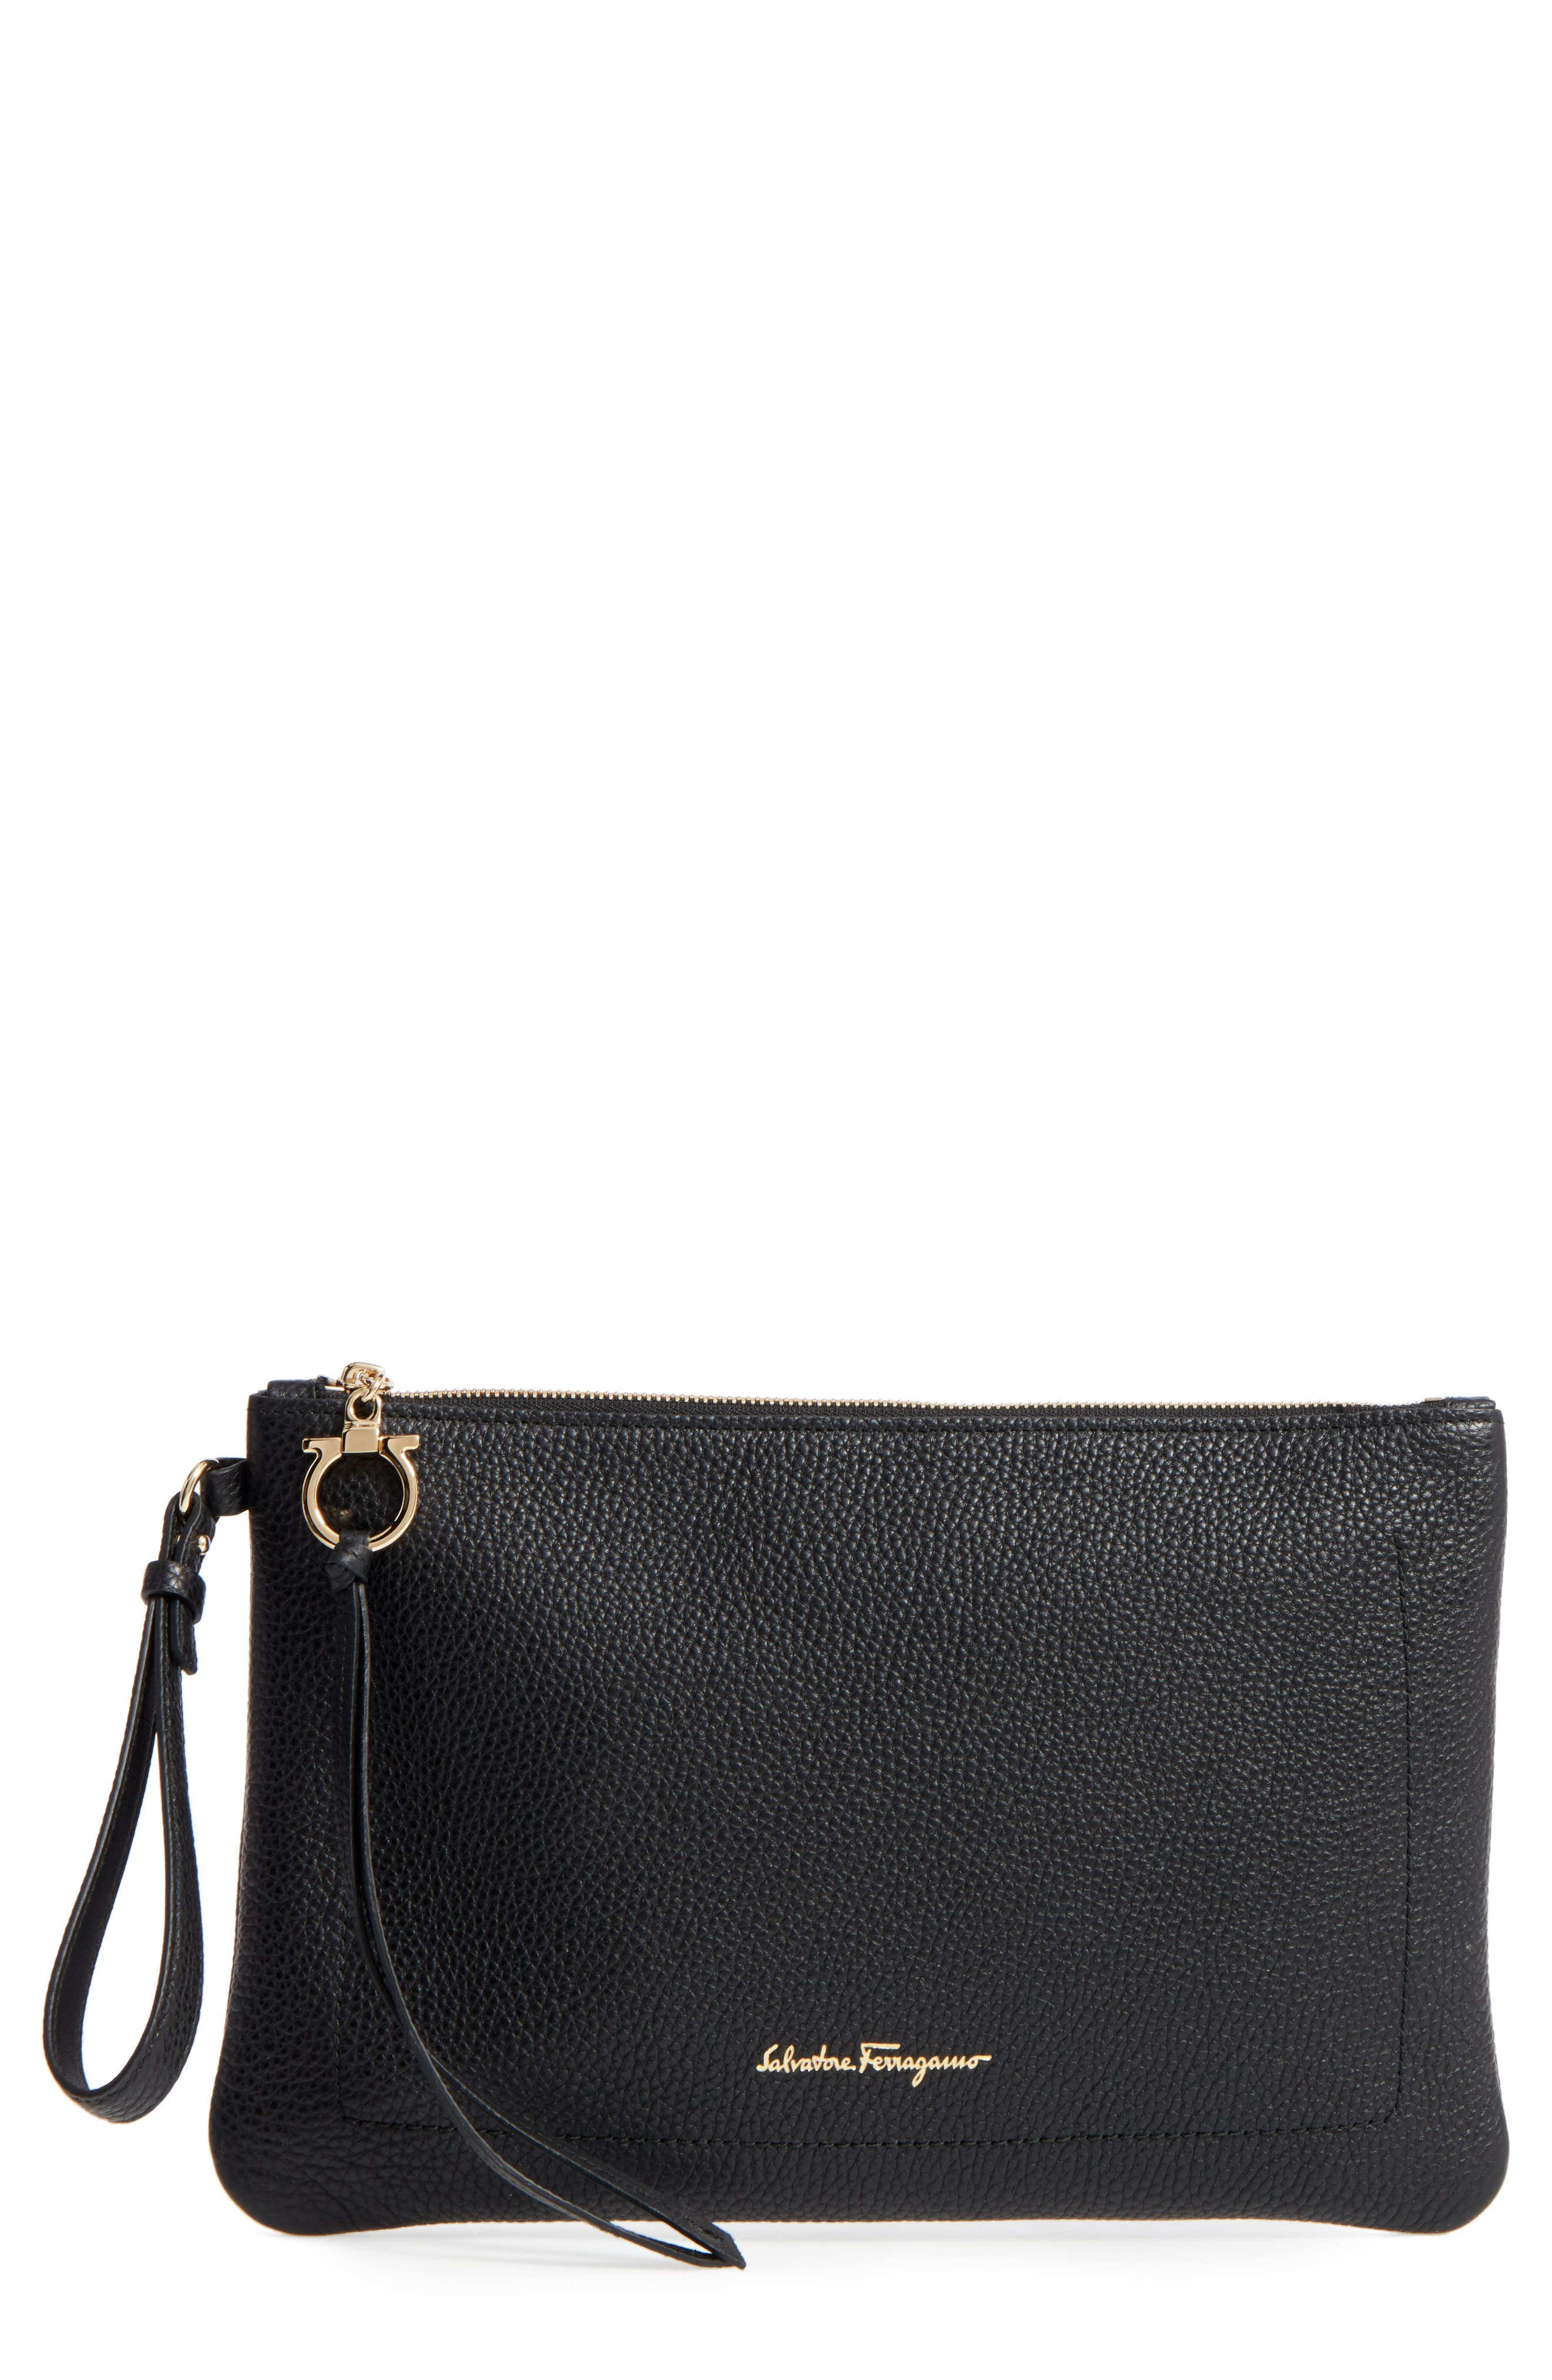 Salvatore Ferragamo Large Pebbled Leather Wristlet Clutch